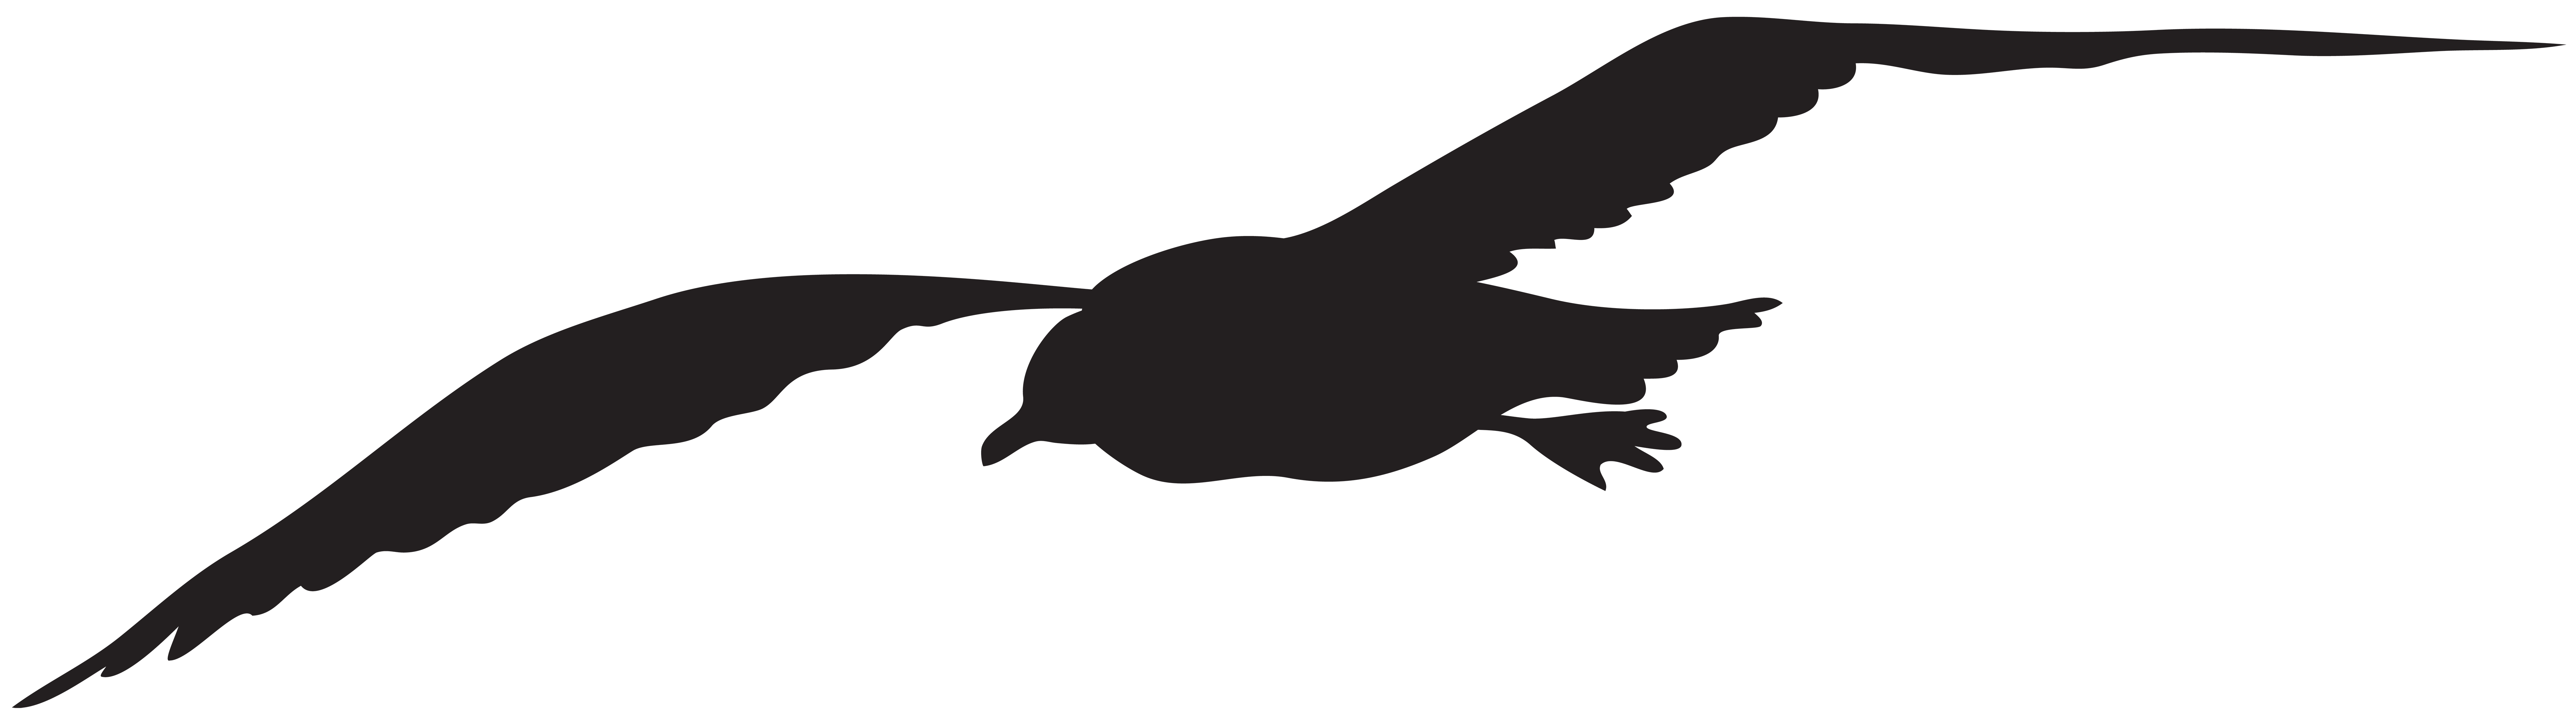 Seagull silhouette clipart jpg library download Seagull Silhouette PNG Clip Art Image | Gallery ... jpg library download